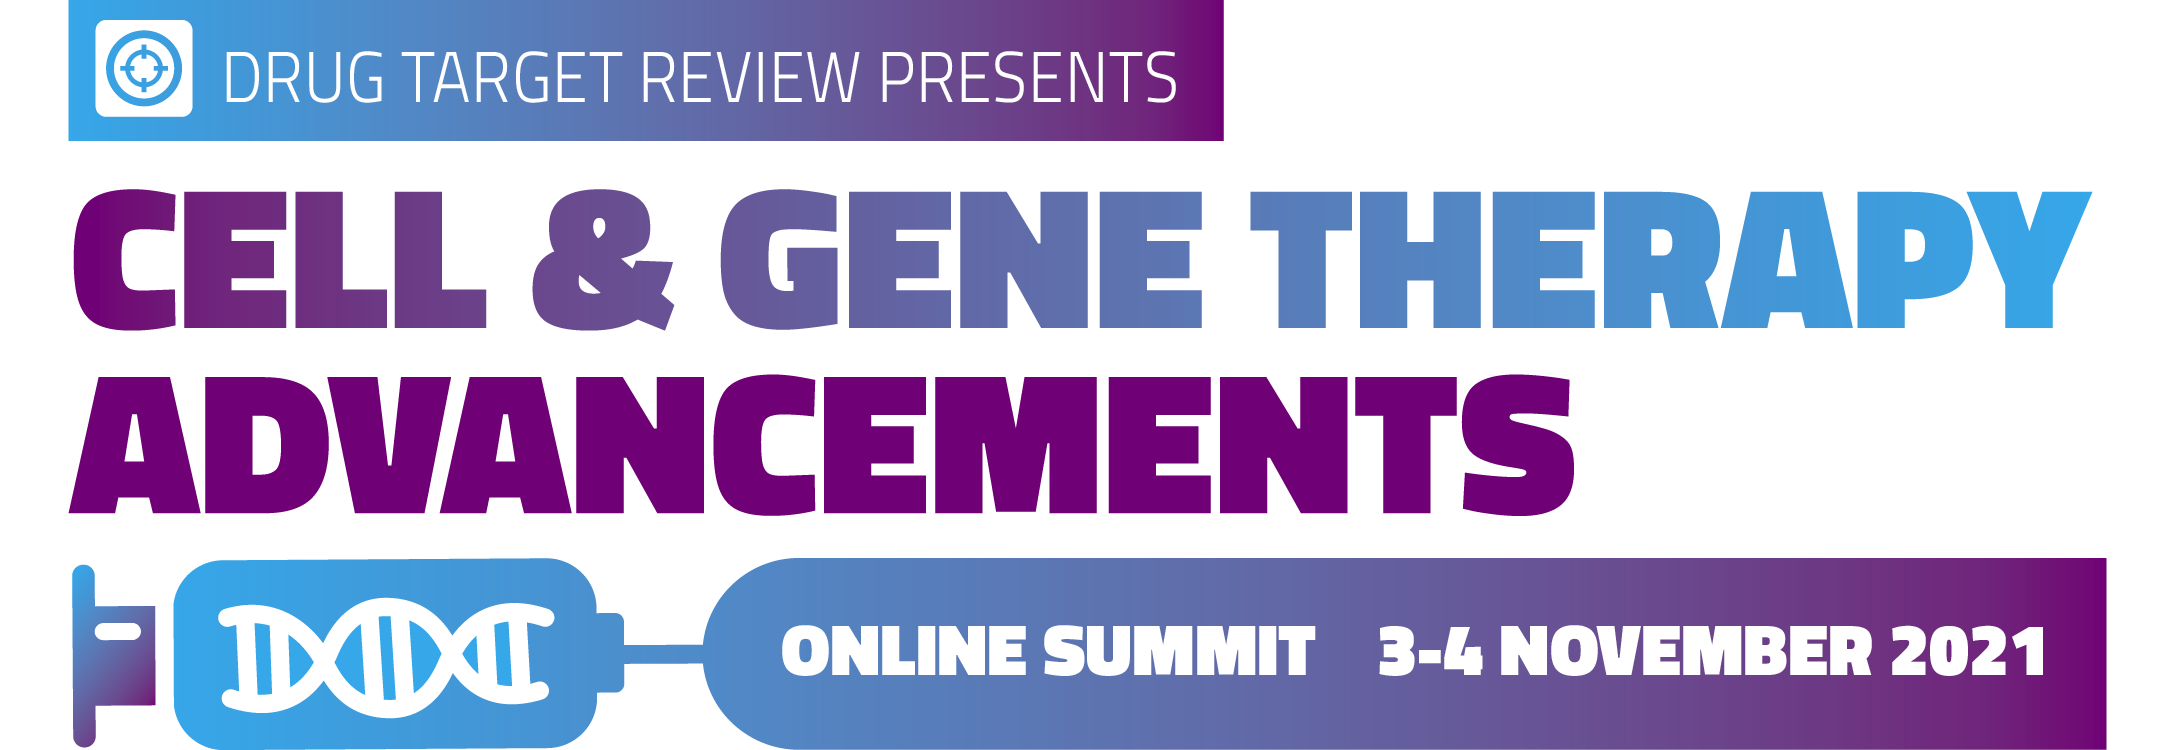 Cell & Gene Therapy Advancements 2021